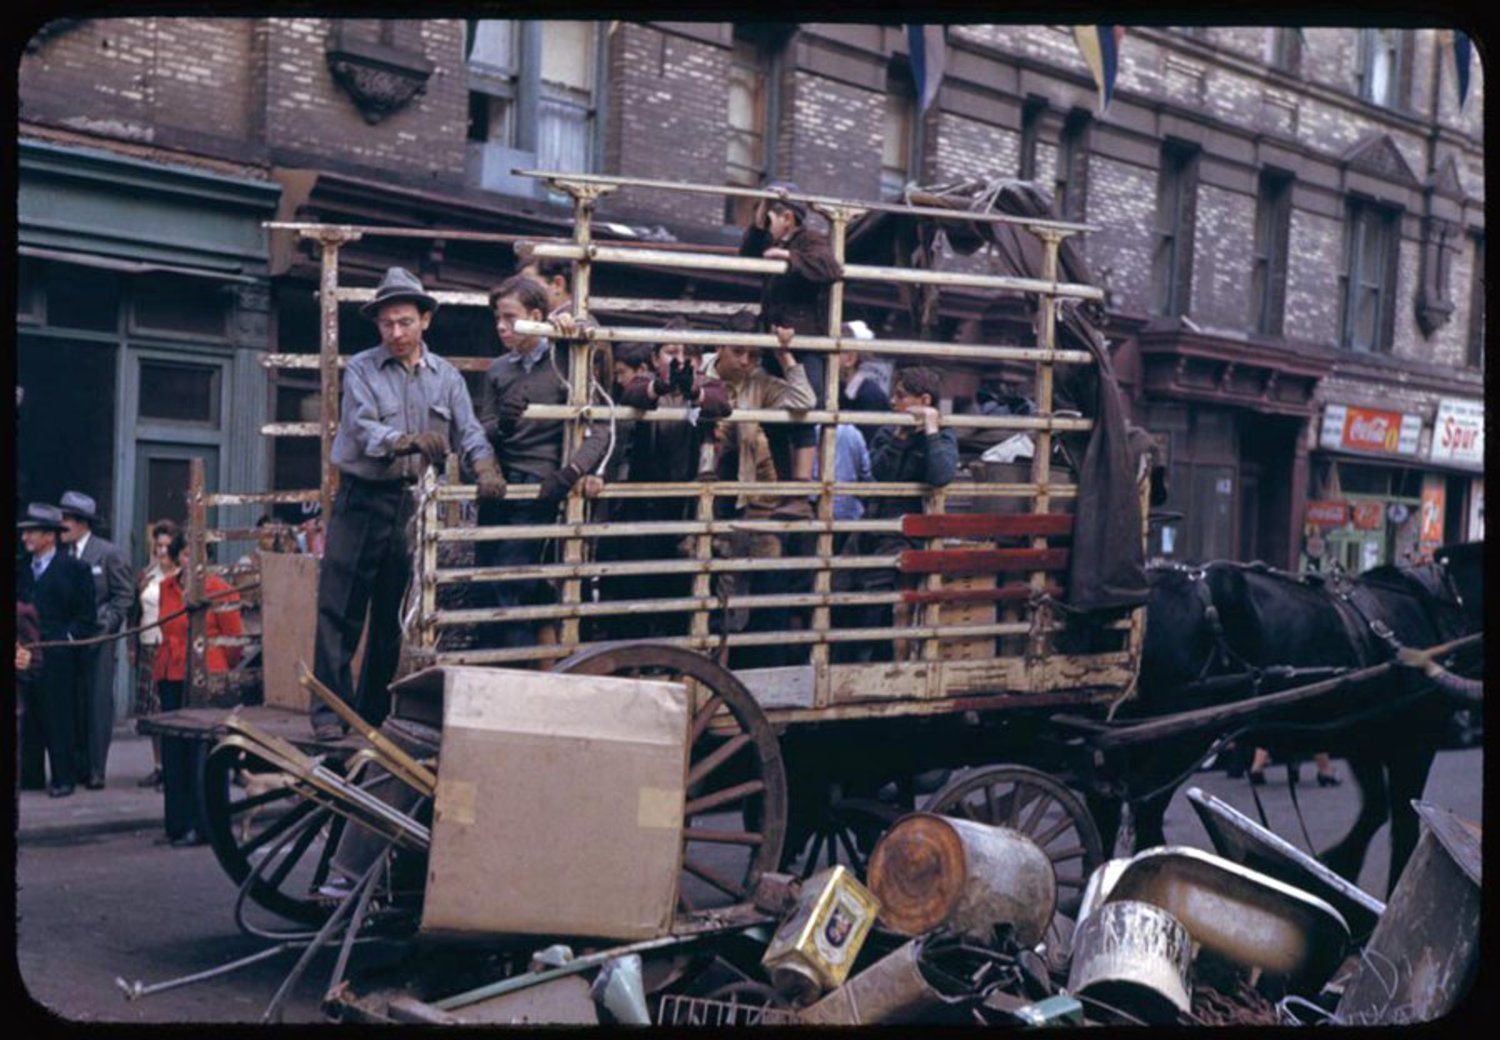 The men pictured here are collecting wartime salvage left outside on the streets of the Lower East Side.